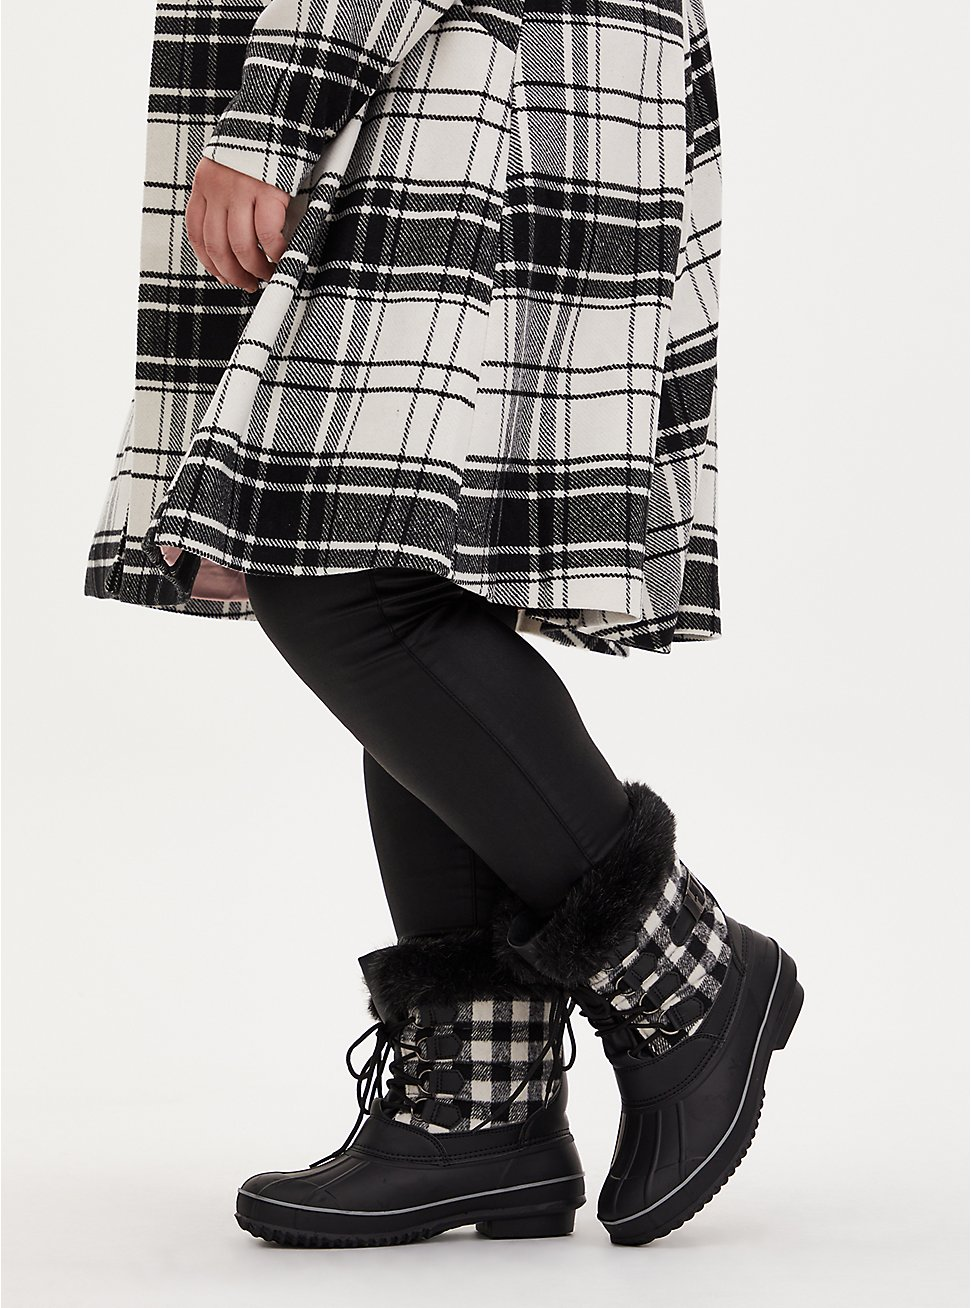 Black Plaid Fur Trimmed Lace-Up Water Resistant Duck Boot (WW), MULTI, hi-res